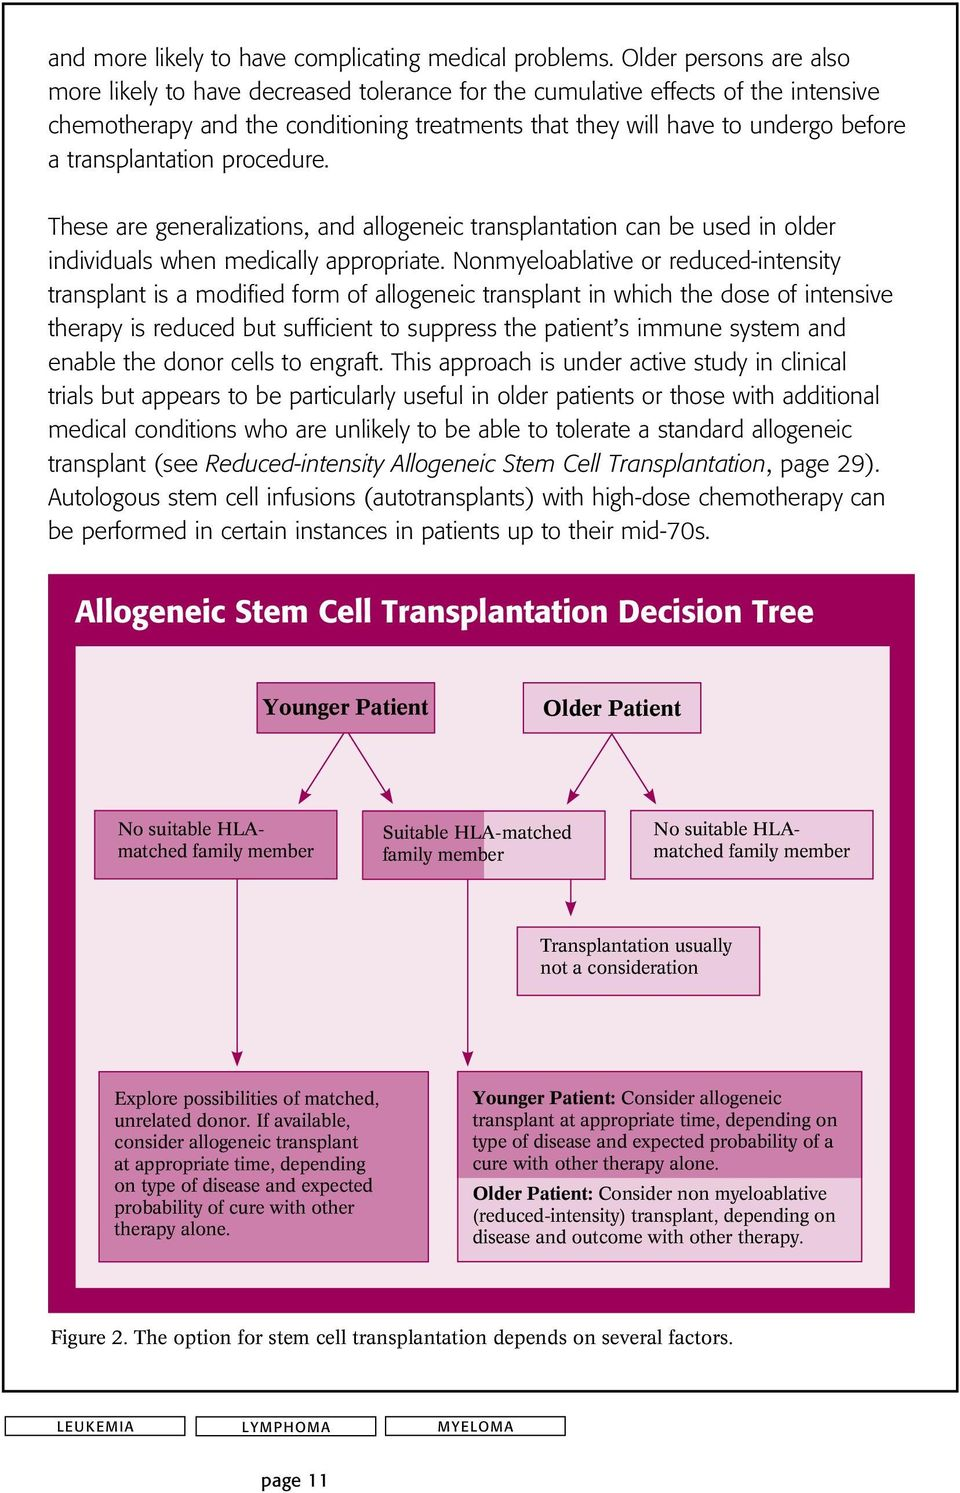 transplantation procedure. These are generalizations, and allogeneic transplantation can be used in older individuals when medically appropriate.